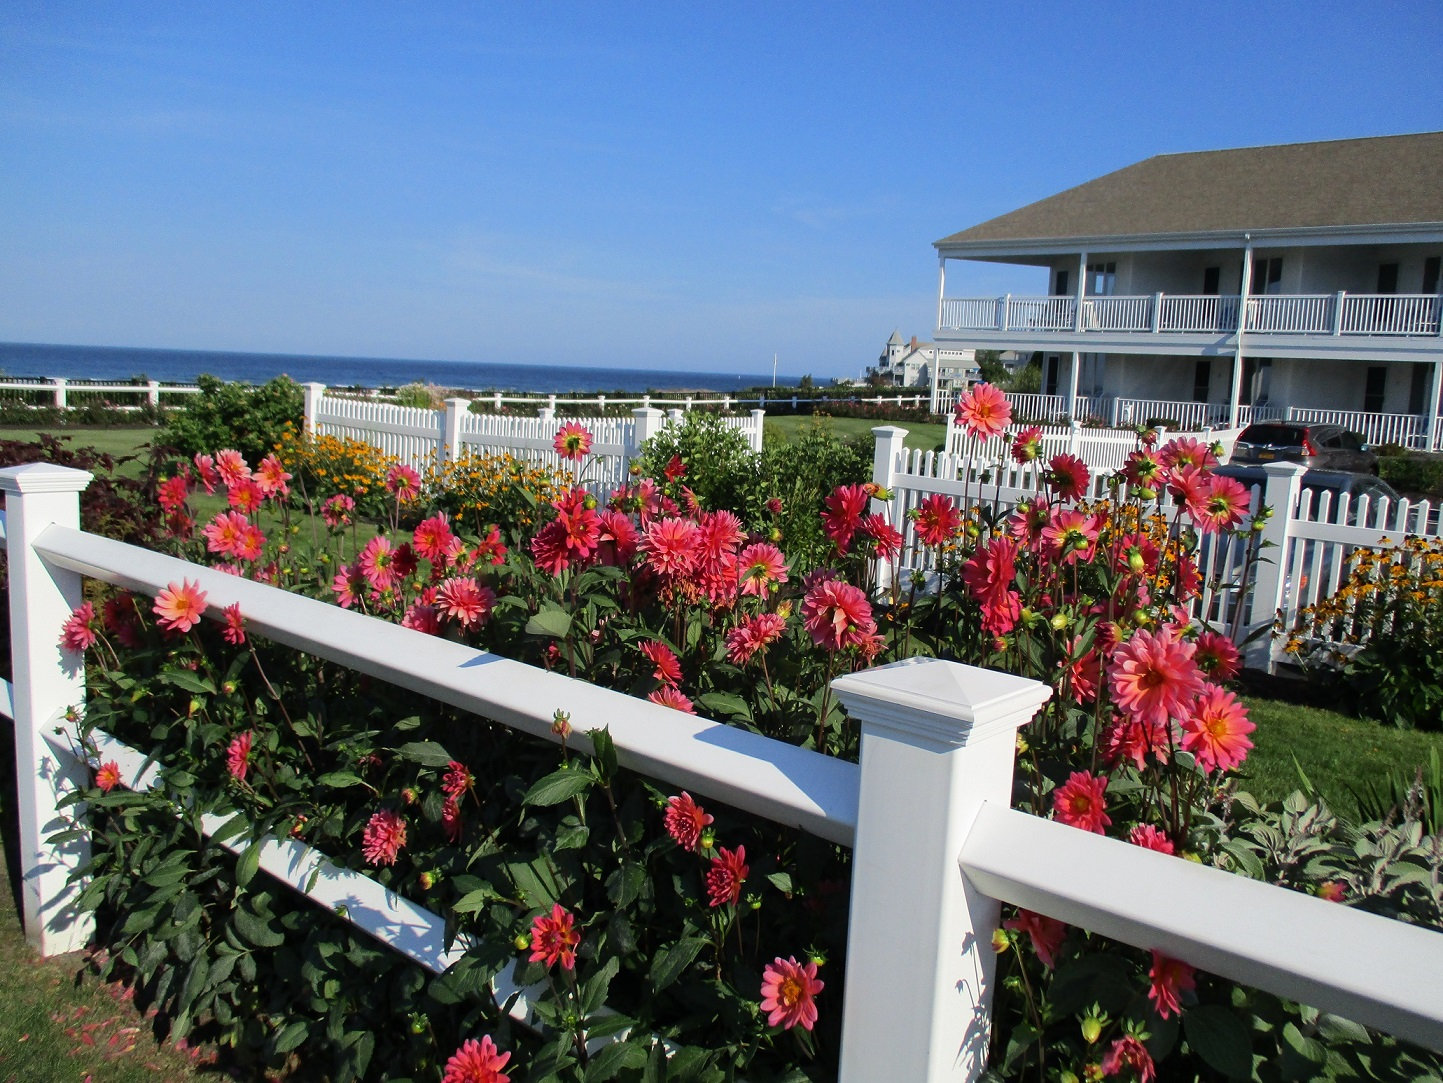 sea-town-flowers-white fence-relocate to a warmer climate in retirement